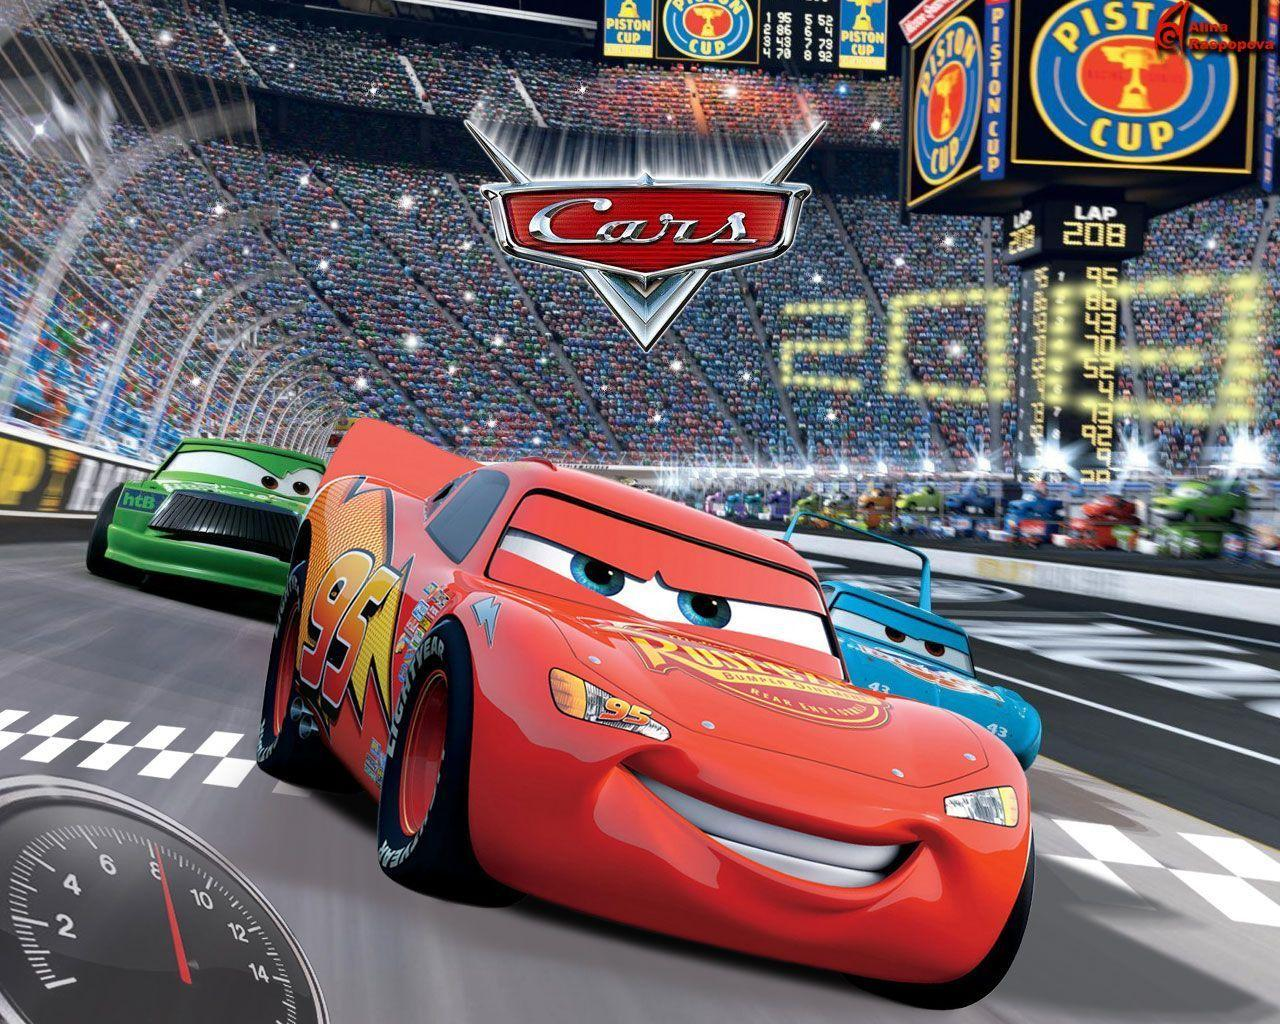 Disney Cars 2 Cartoon Desktop Background HD | Cartoons Images